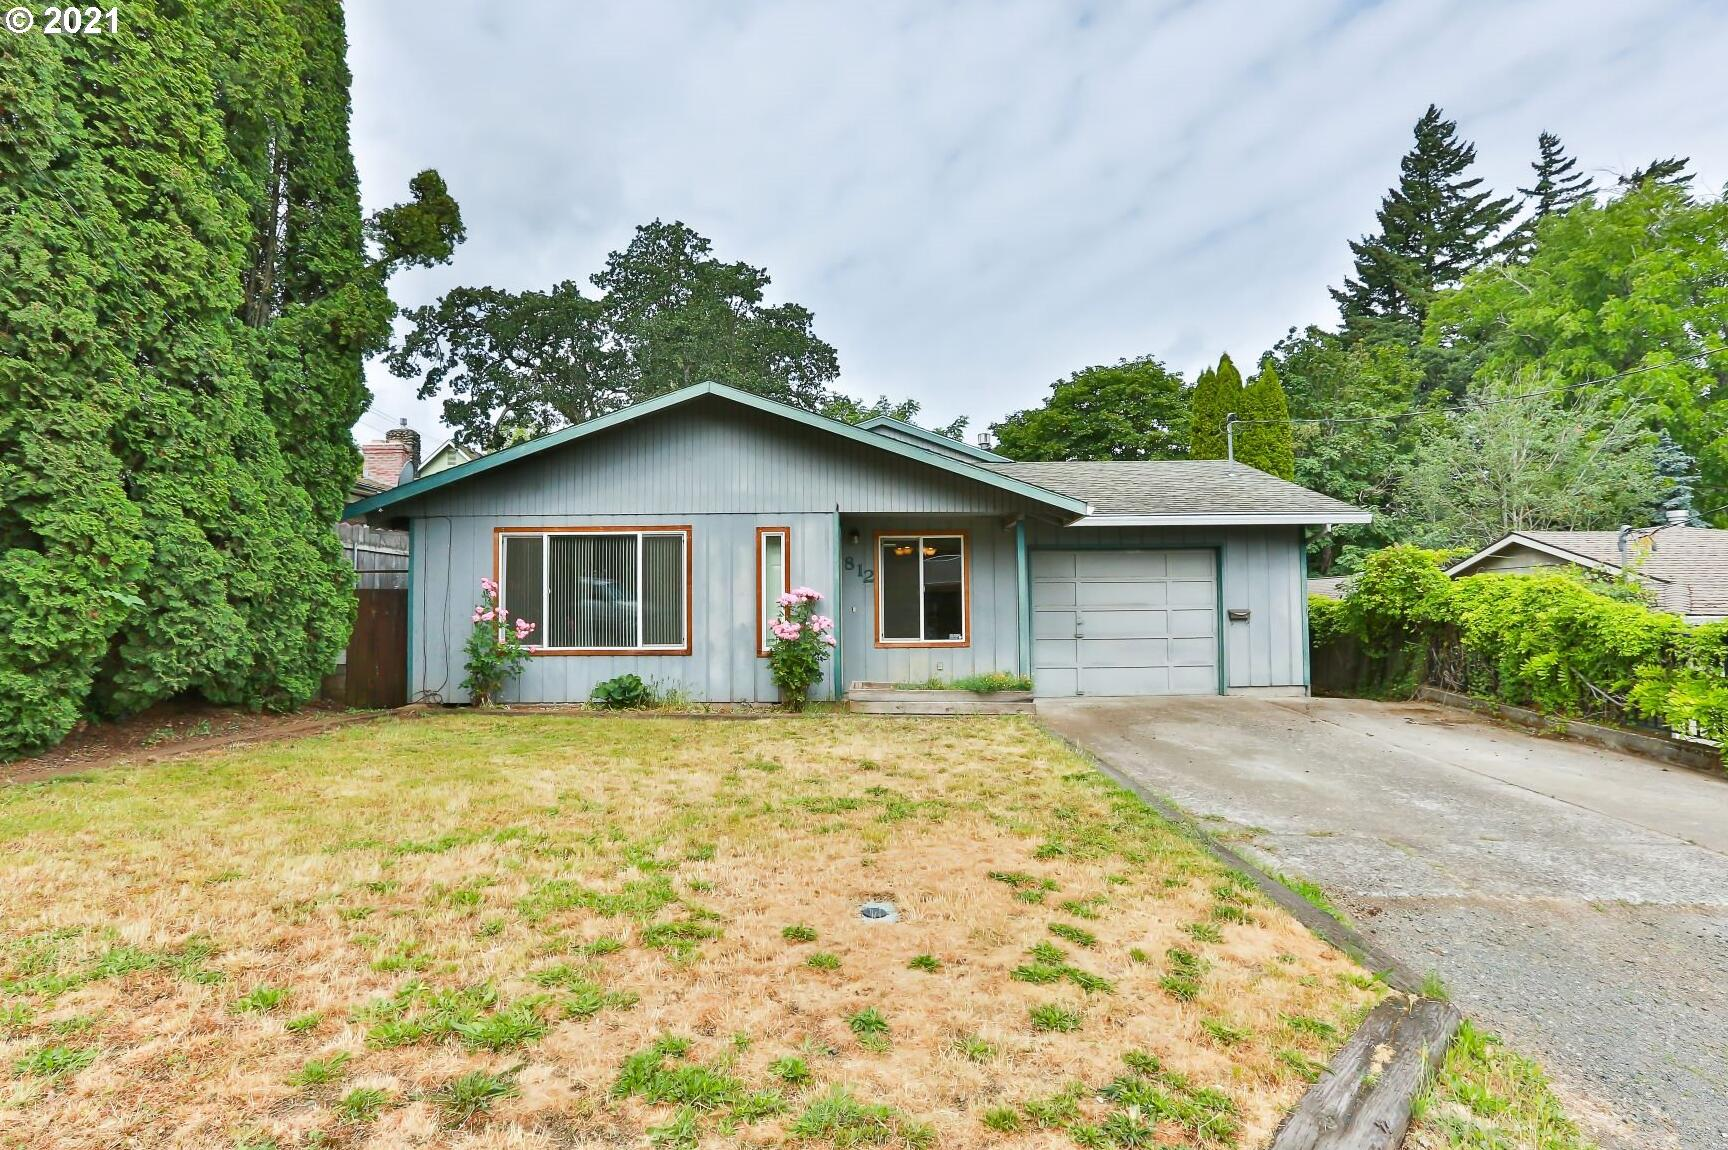 Photo of 812 8TH ST Hood River OR 97031